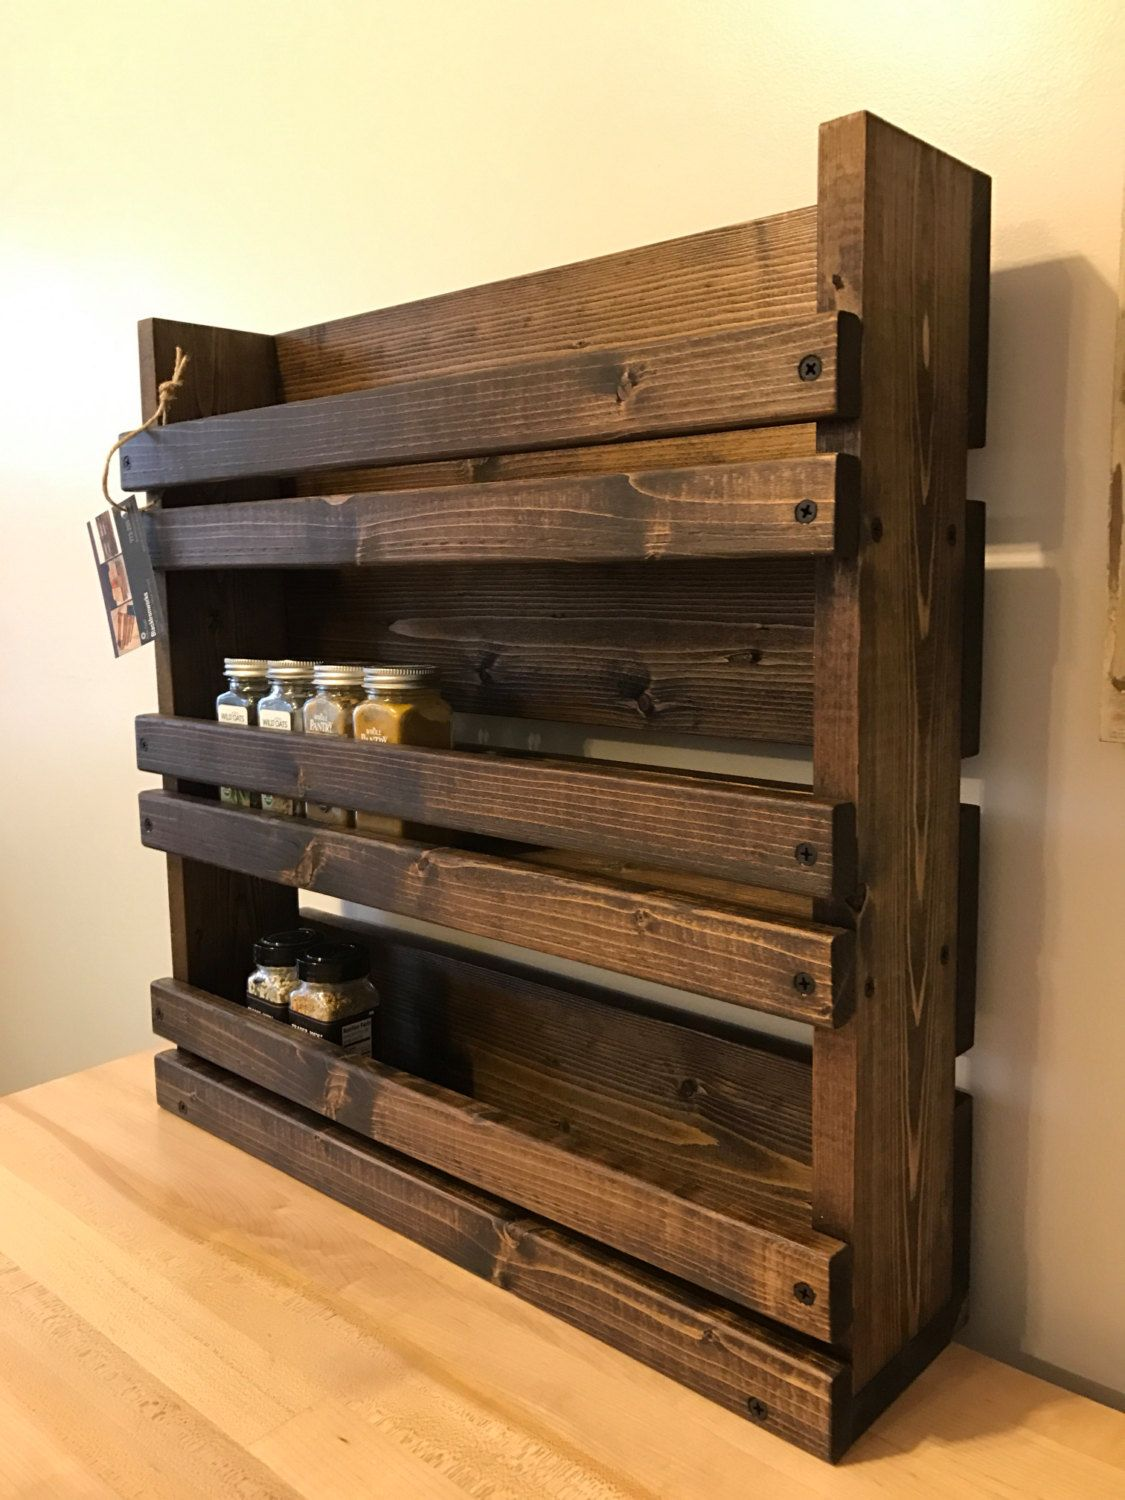 Wood Spice Rack For Wall Captivating Spice Up Your Kitchen With Our Simple And Rustic Style Solid Wood Inspiration Design